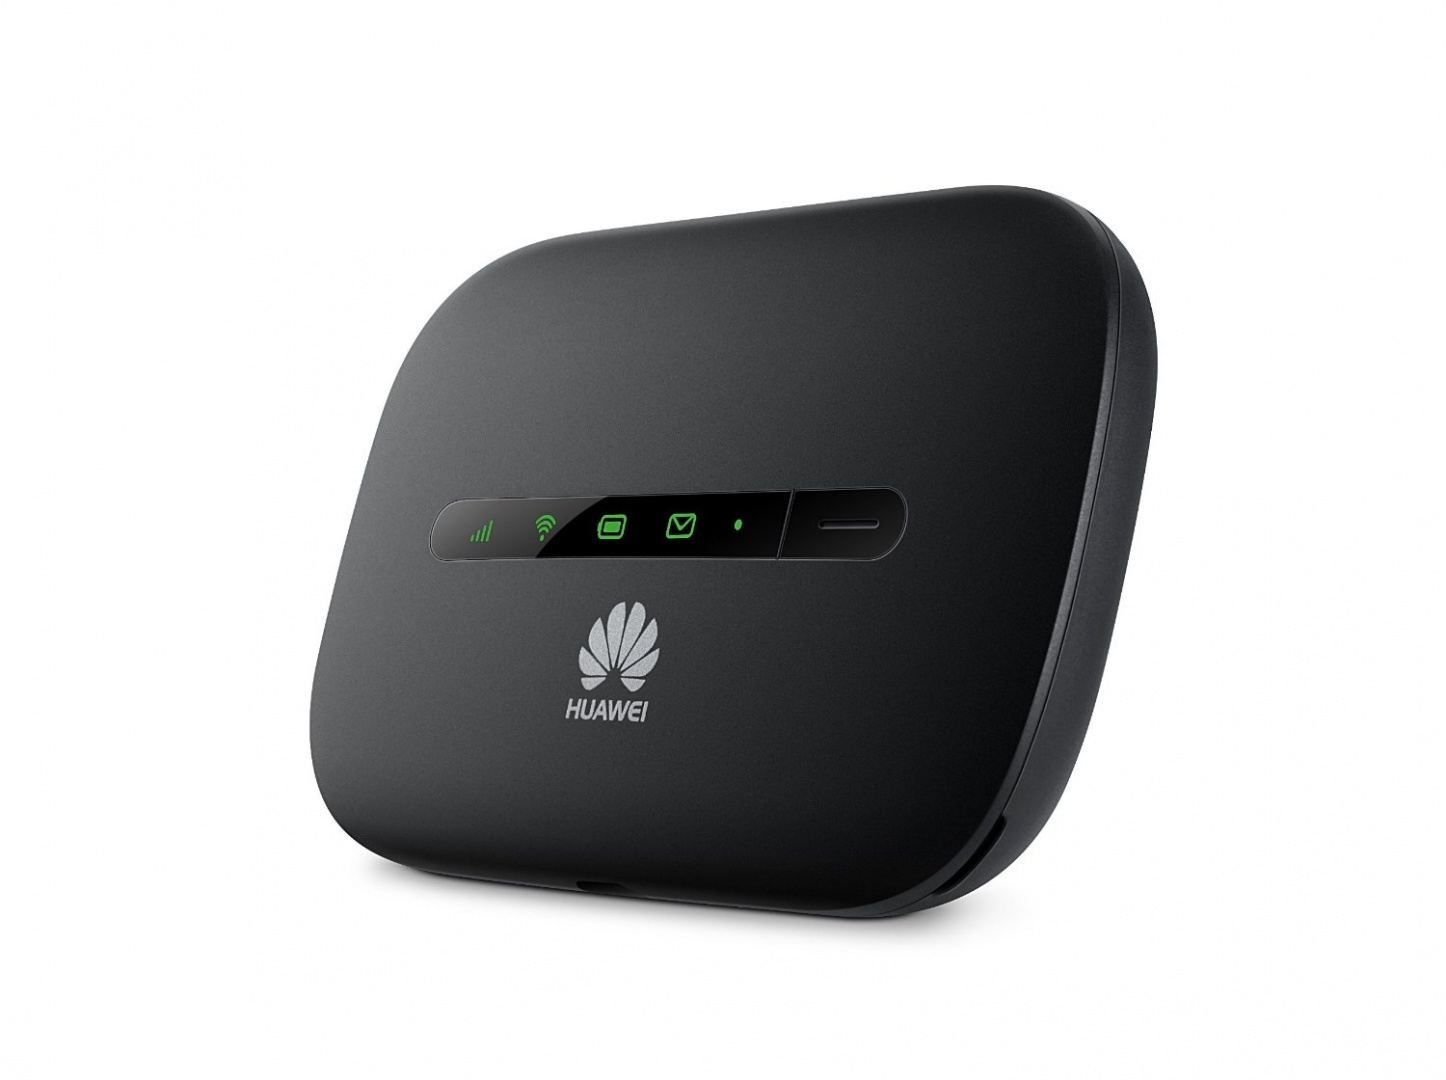 Huawei Mobile Hotspot Electronics Buy Online From B315 4g Lte 150mbps Home Router Modem Wifi Wireless